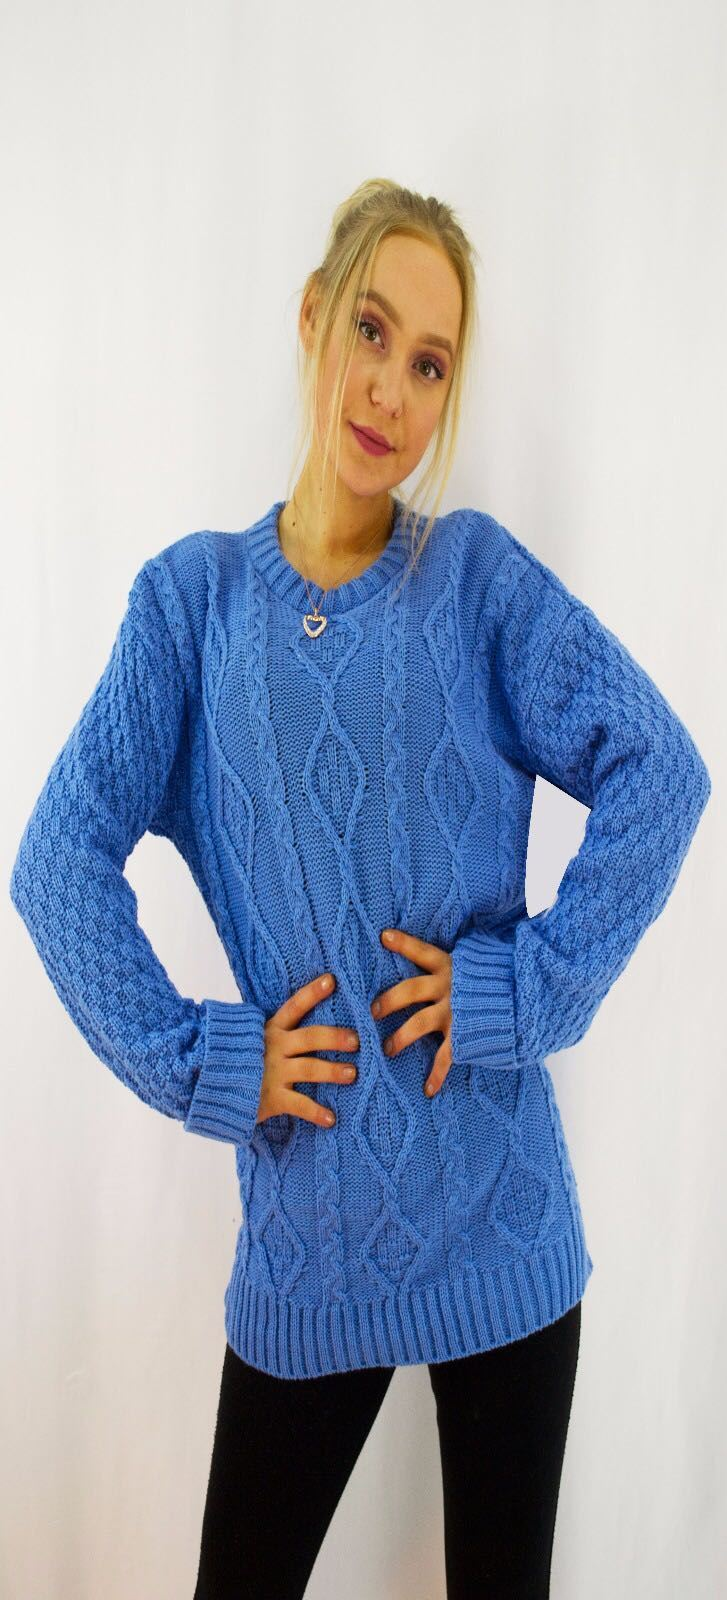 New-Ladies-Long-Manche-Chunky-Cable-Knitted-Jumper-crew-neck-hiver-Sweater-Top miniature 35